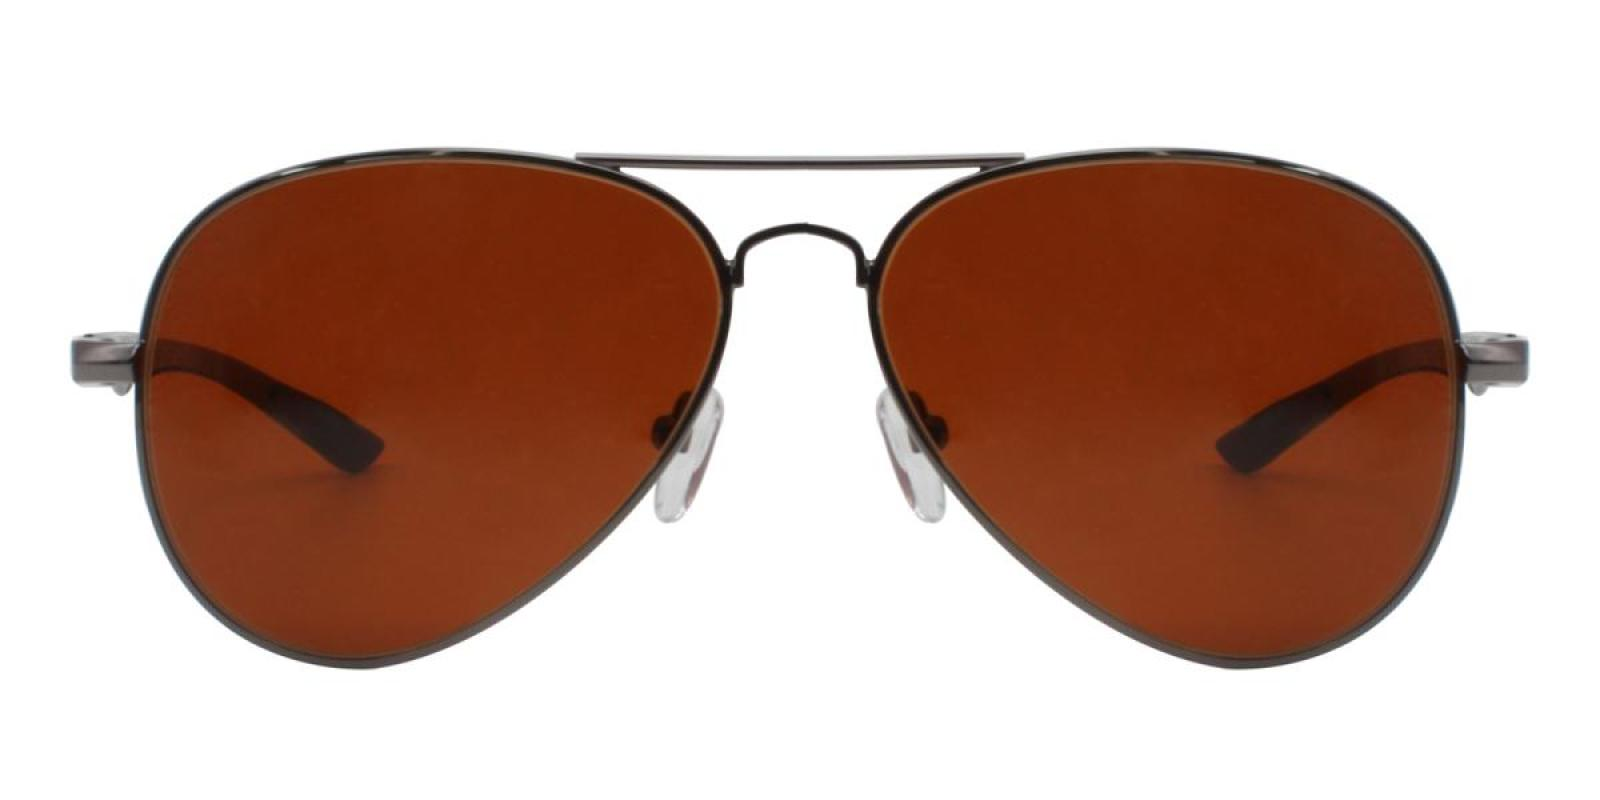 Mckain-Gun-Aviator-Metal-Sunglasses-additional2